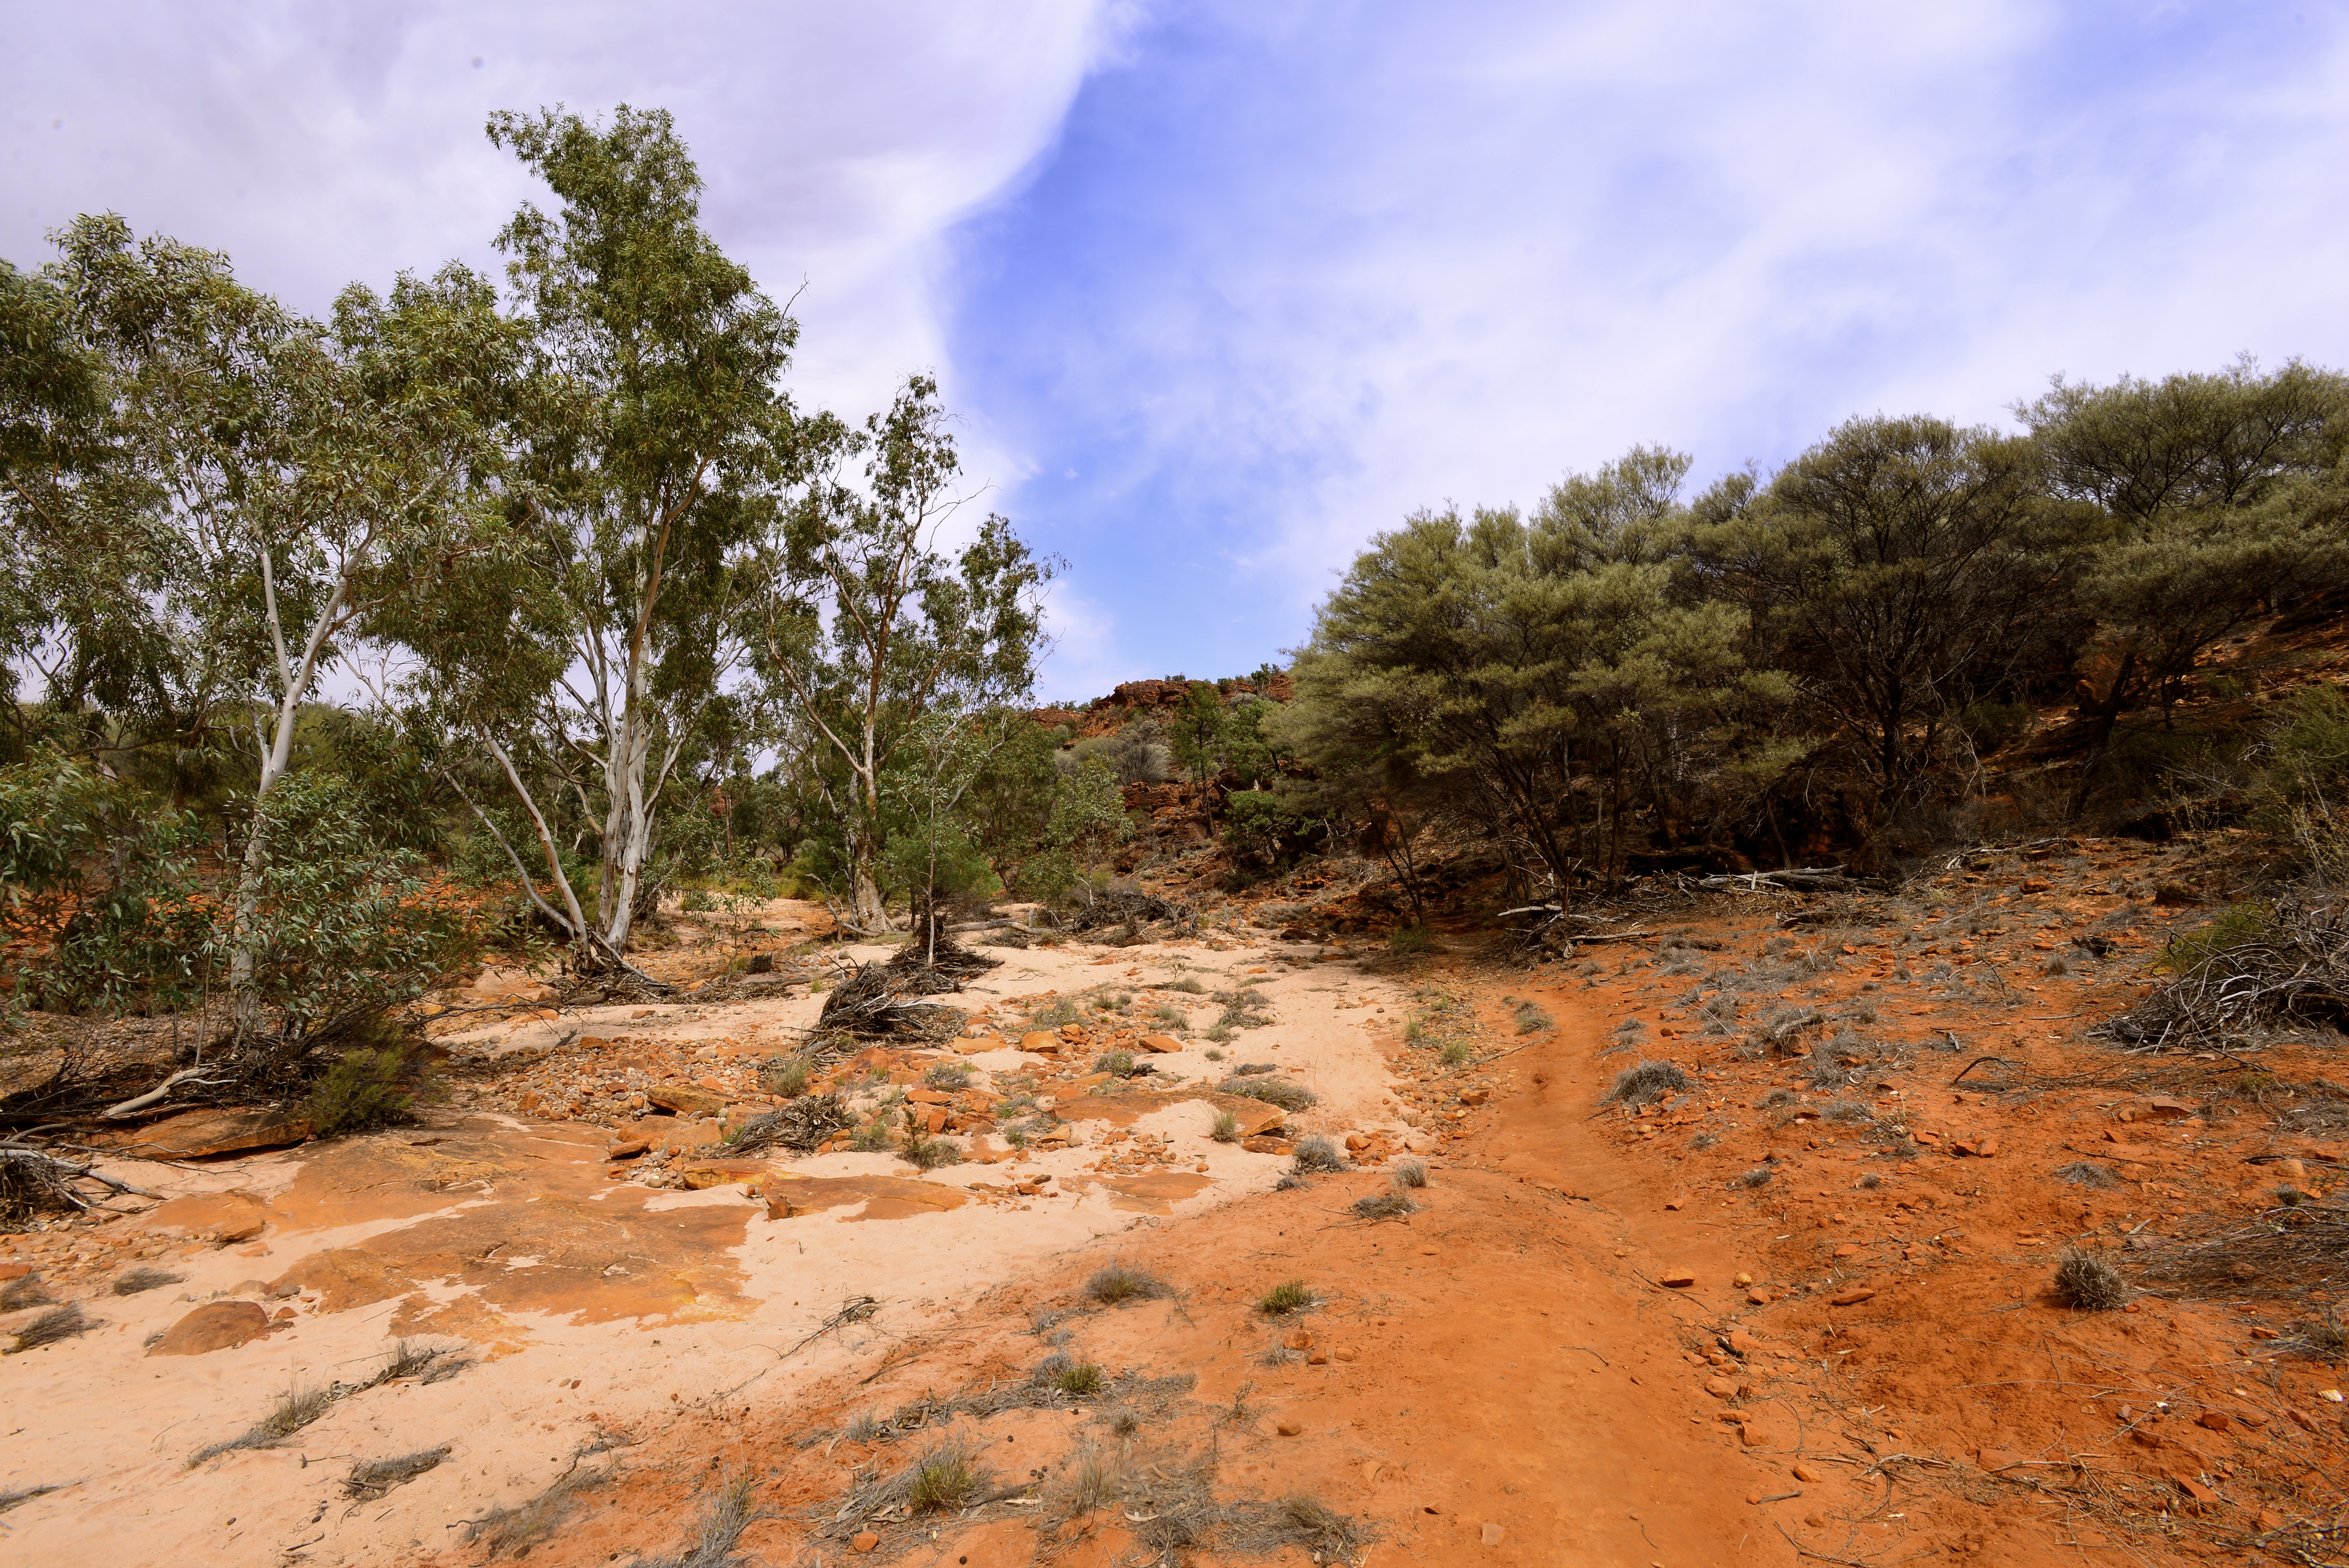 Colours (Of the Australian Outback)